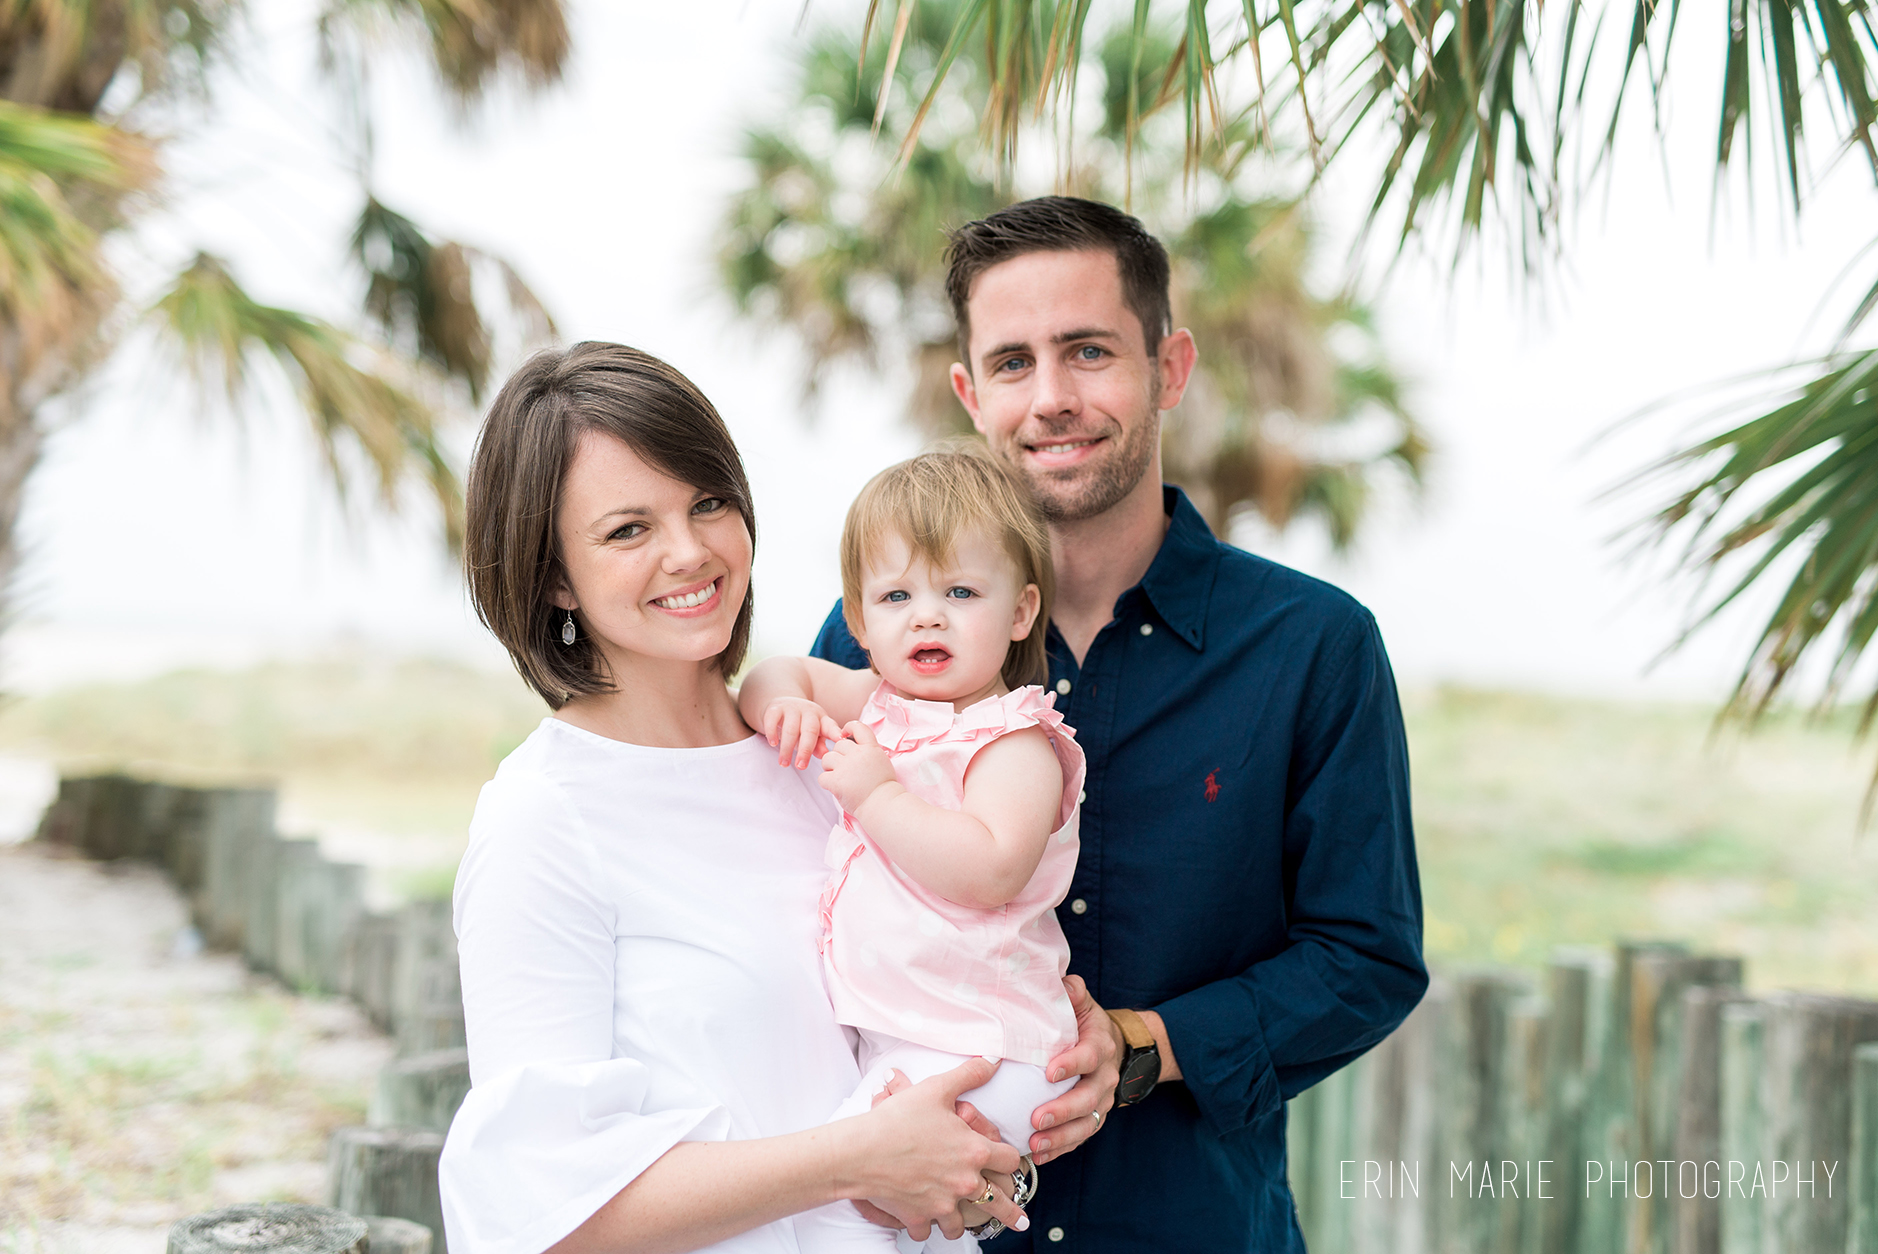 Sandkey_Beach_Family_Photographer_01.jpg